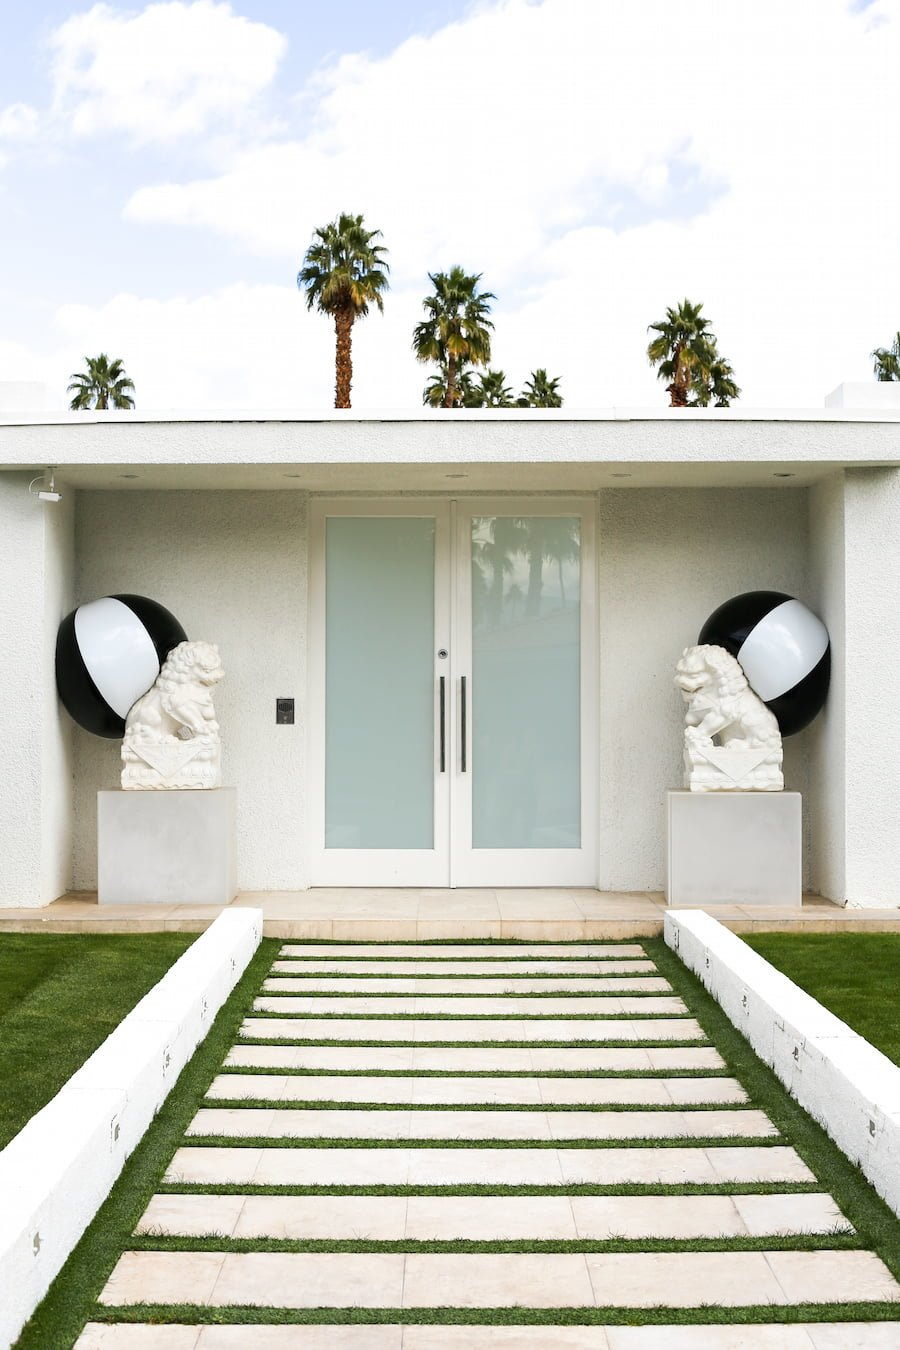 Alt Summit Instagram Tour of Palm Springs - Midcentury Modern Doors // Salty Canary